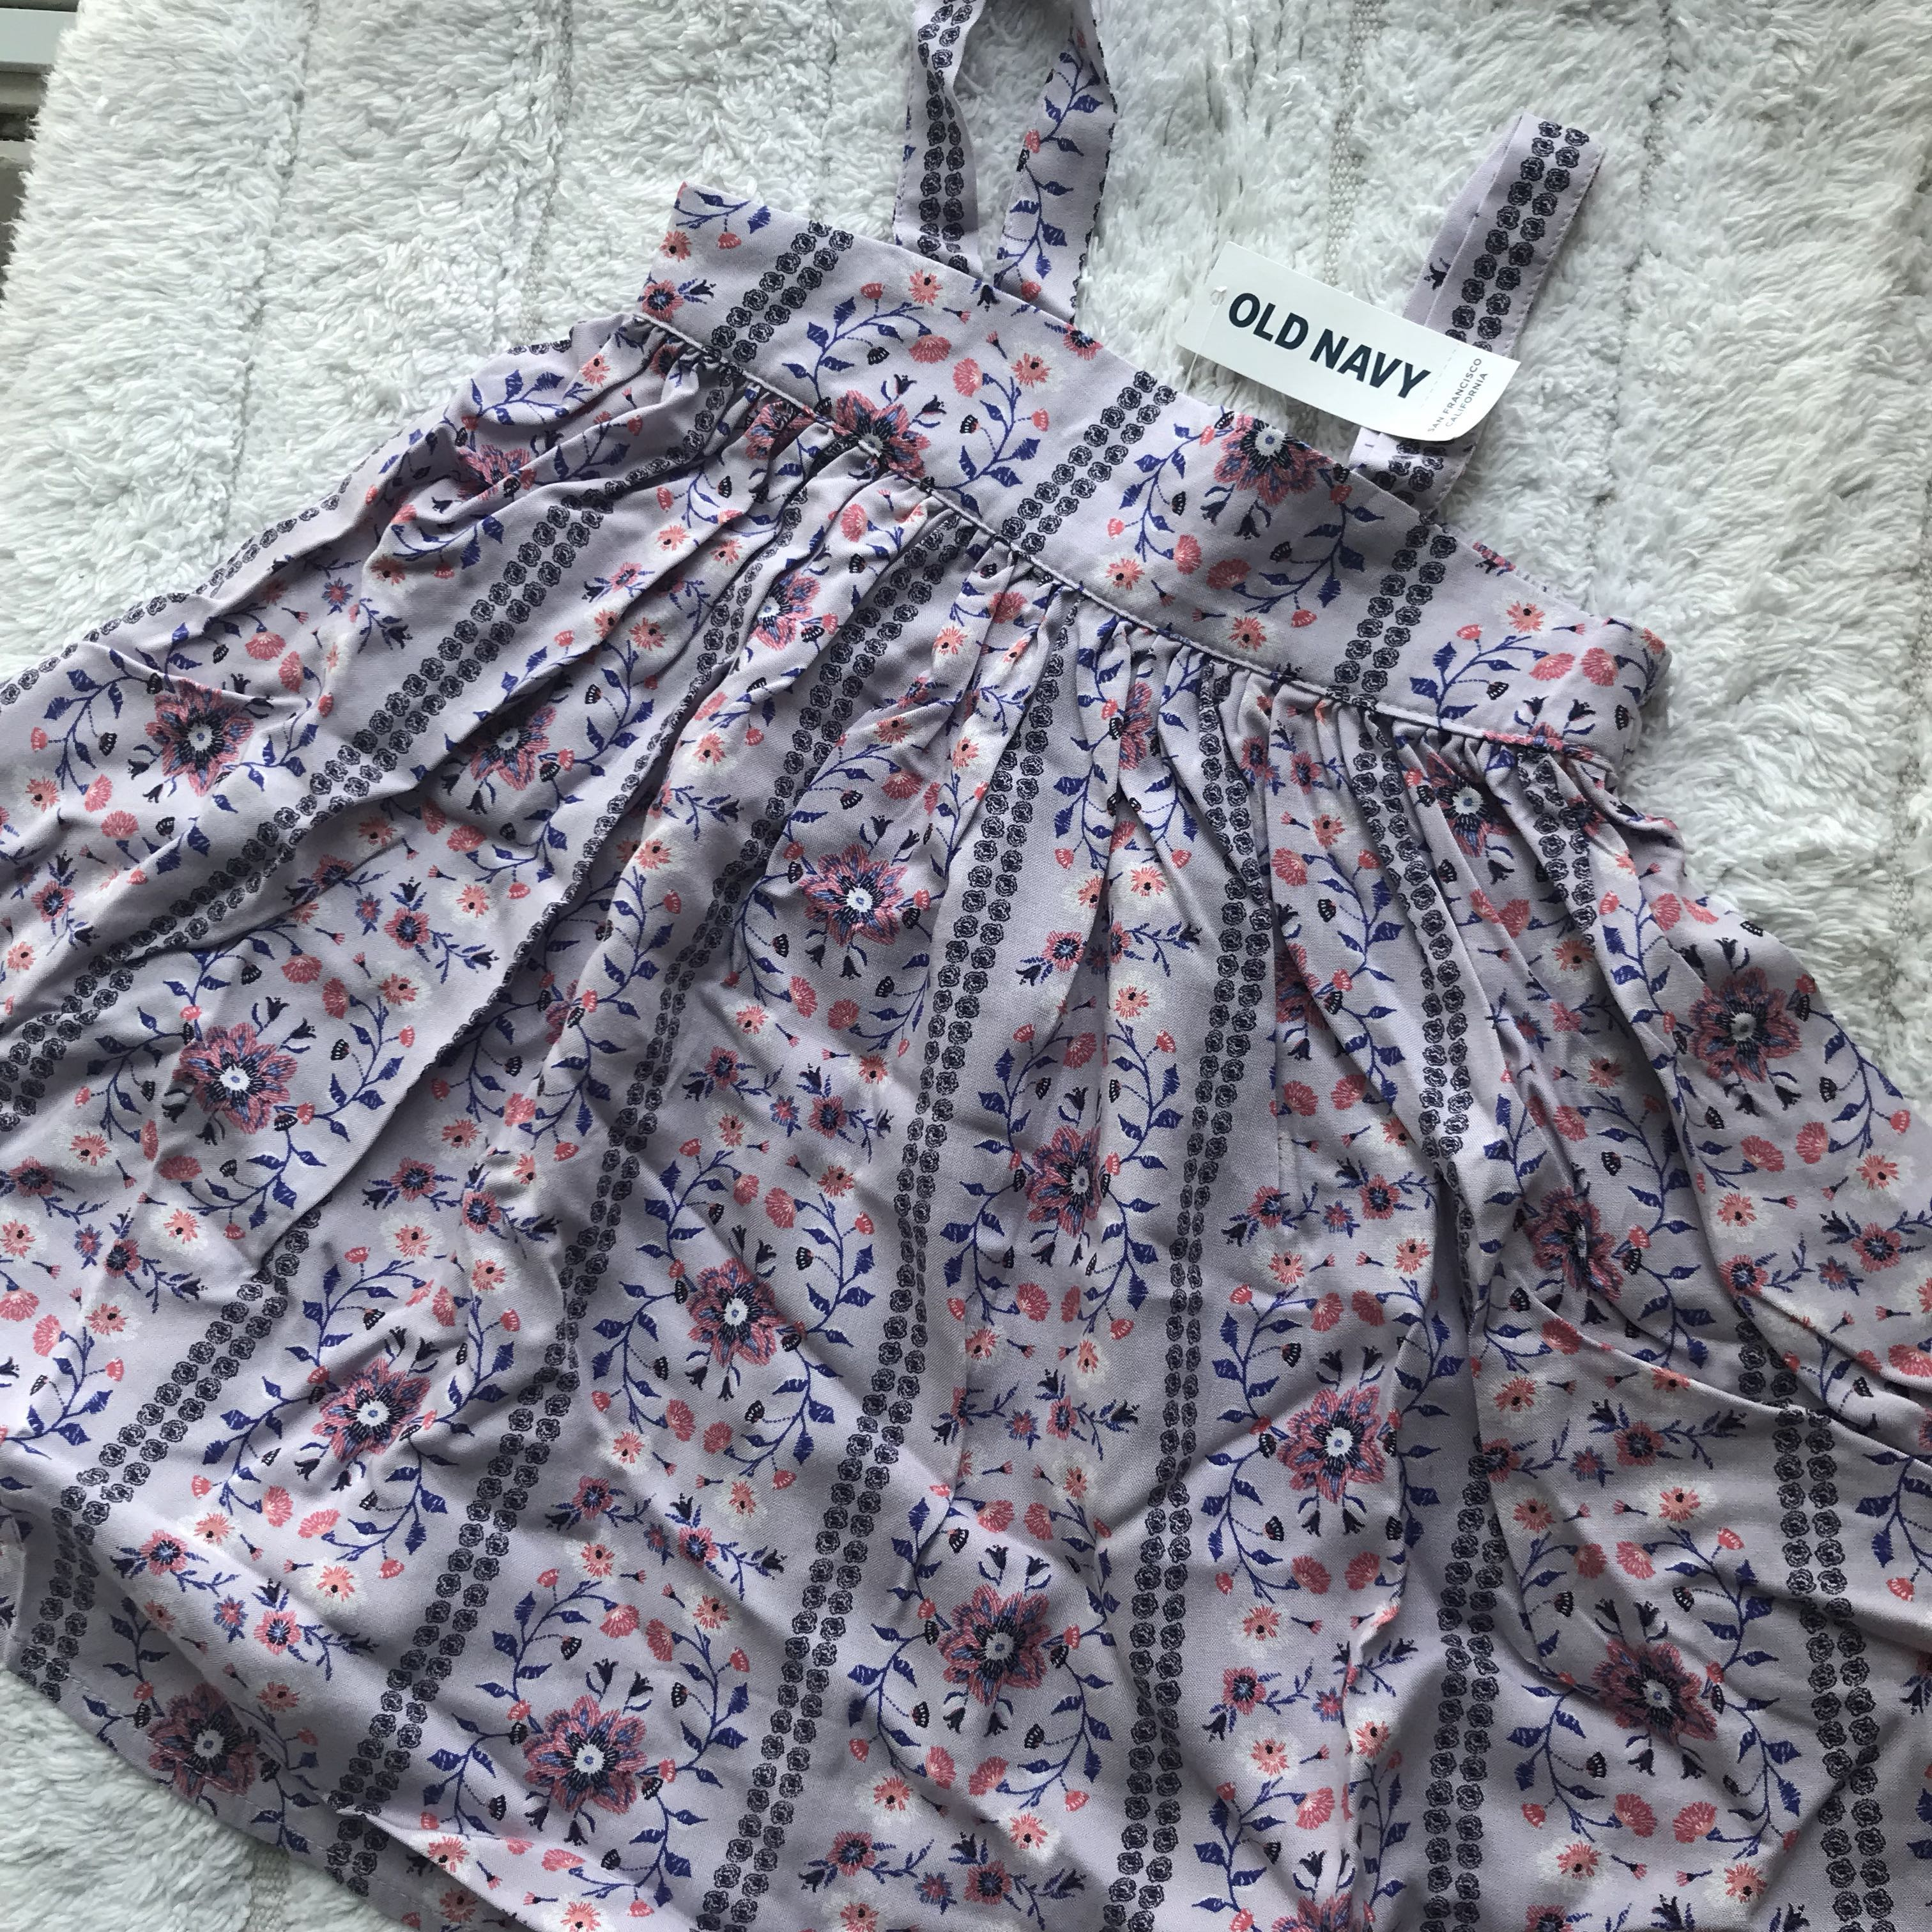 e2e9f5312 BN Old Navy Toddler Girl Floral Summer Tank Dress 18mths-3T available! Two  colours cream and lilac!, Babies & Kids, Girls' Apparel, 1 to 3 Years on ...